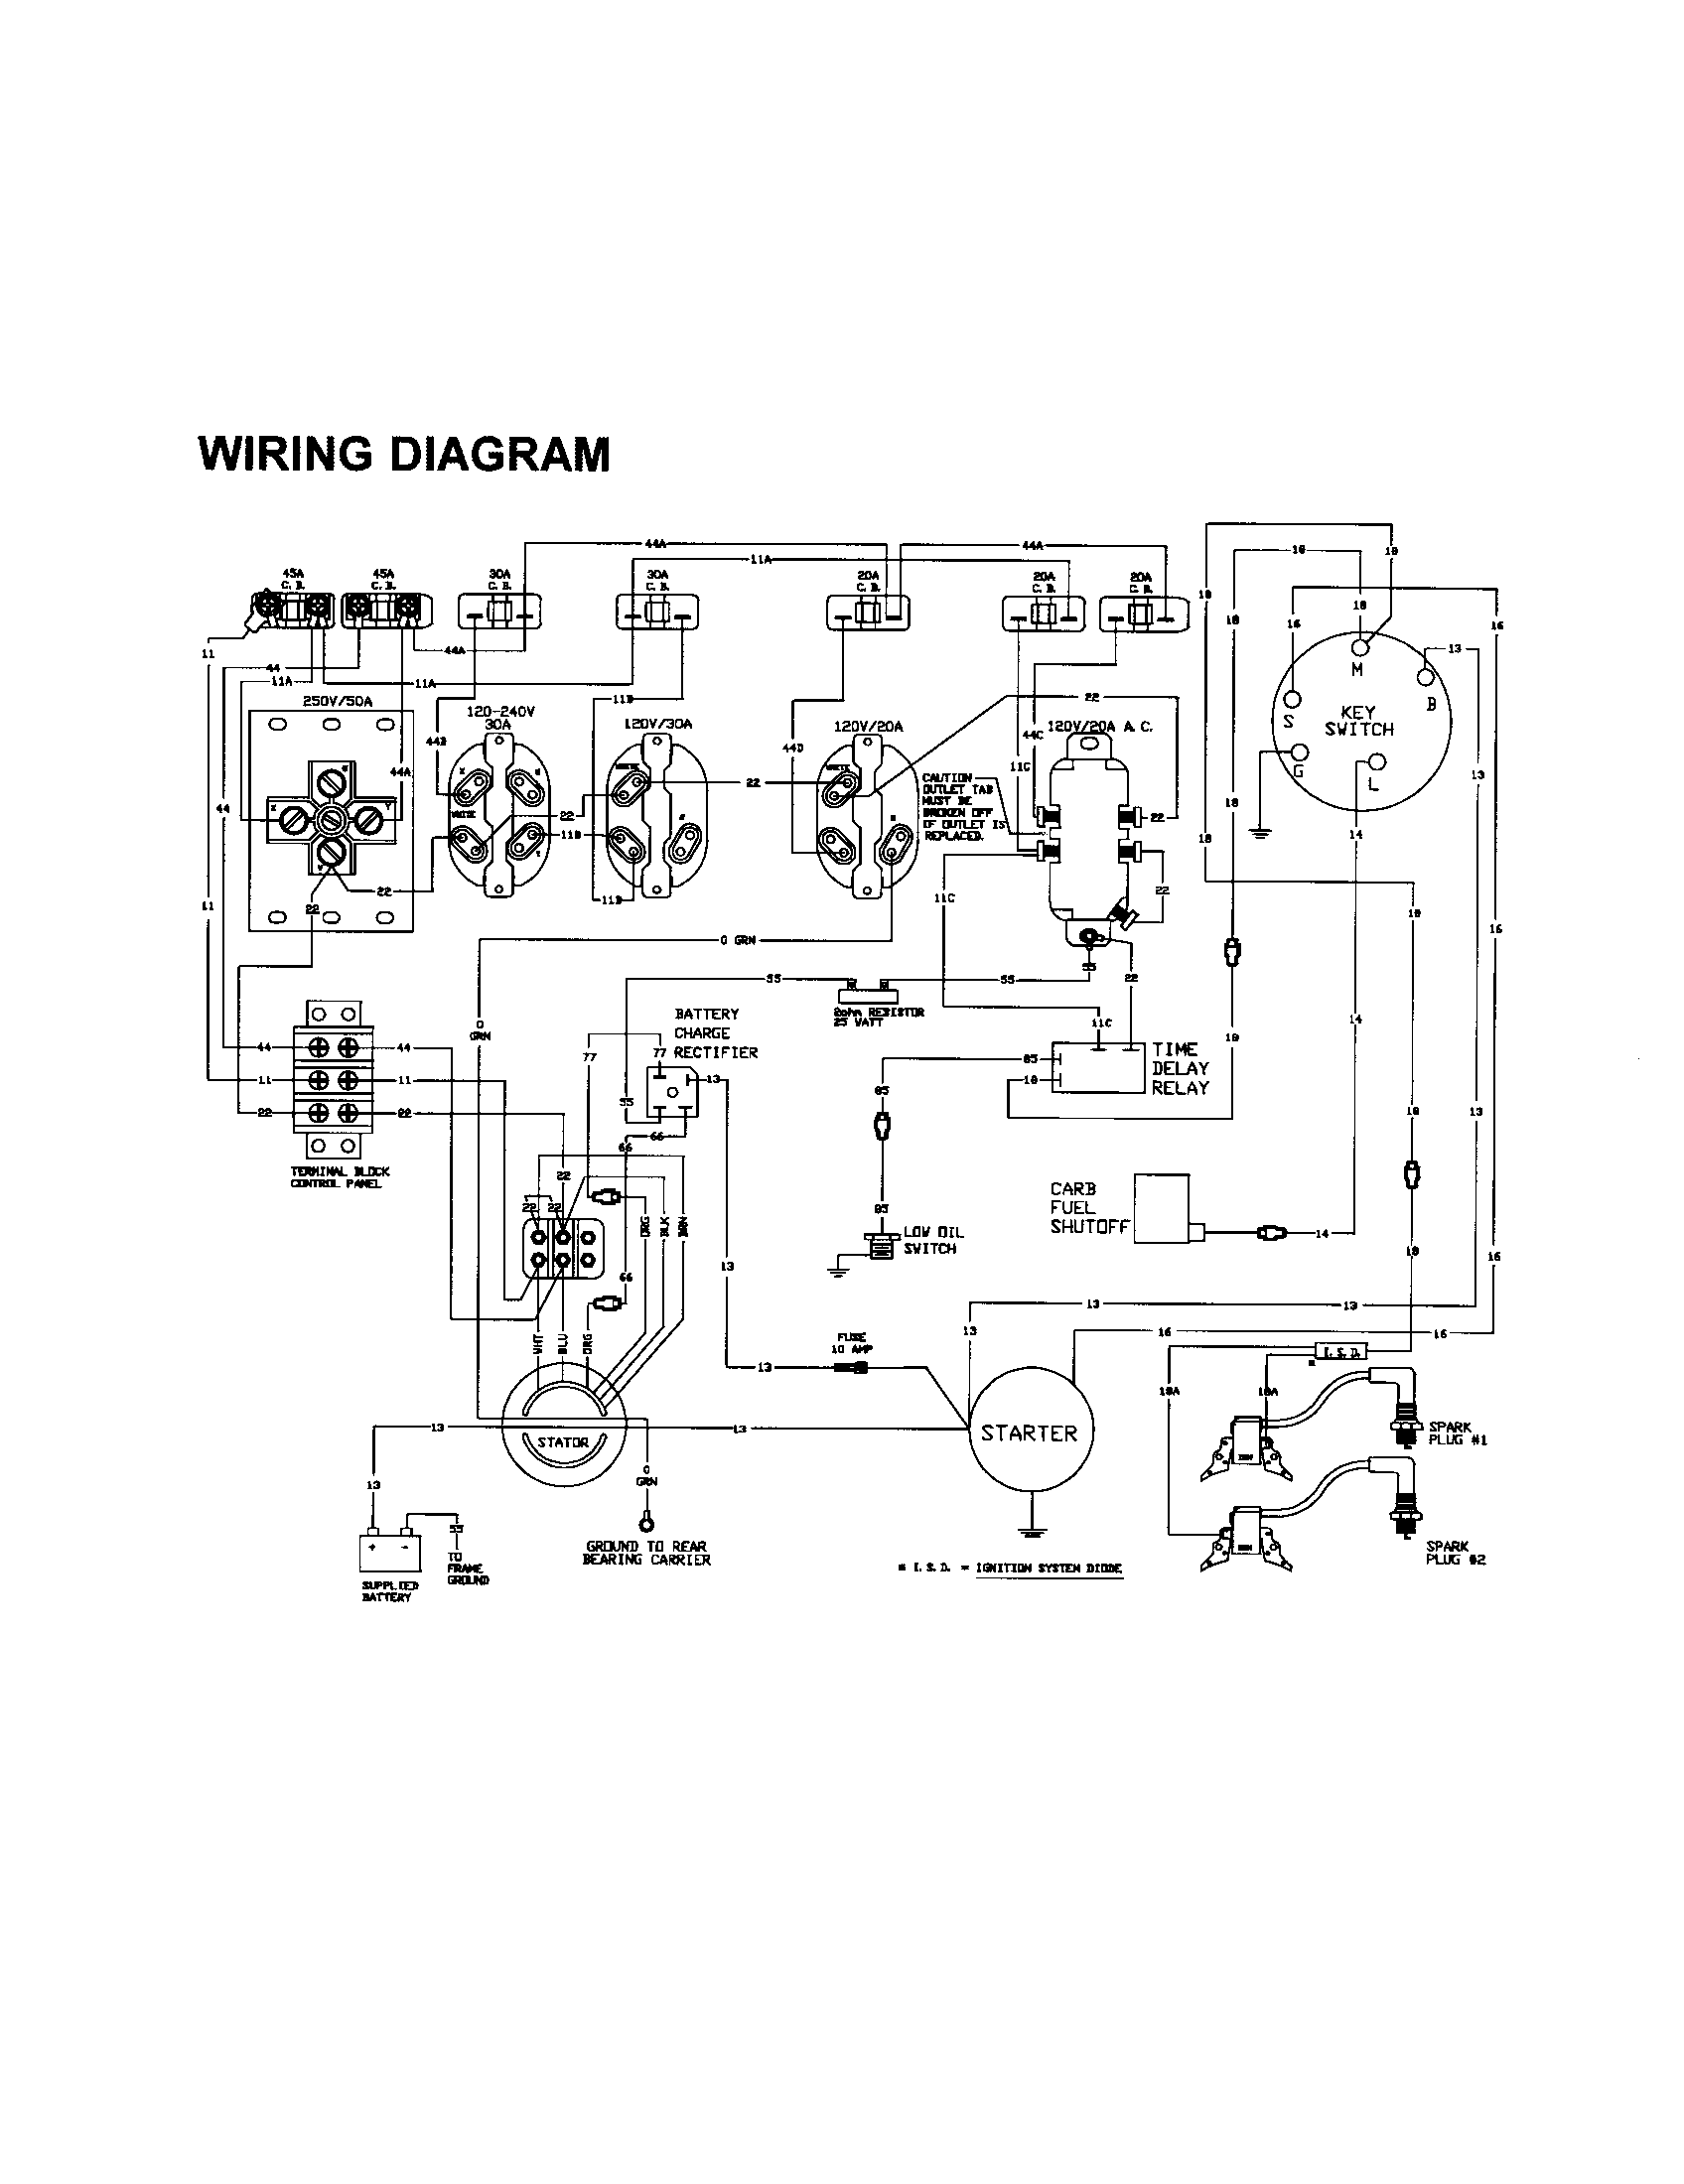 small resolution of generac ignition switch wiring diagram wiring diagram generac industrial generator generac xp8000e wiring diagram